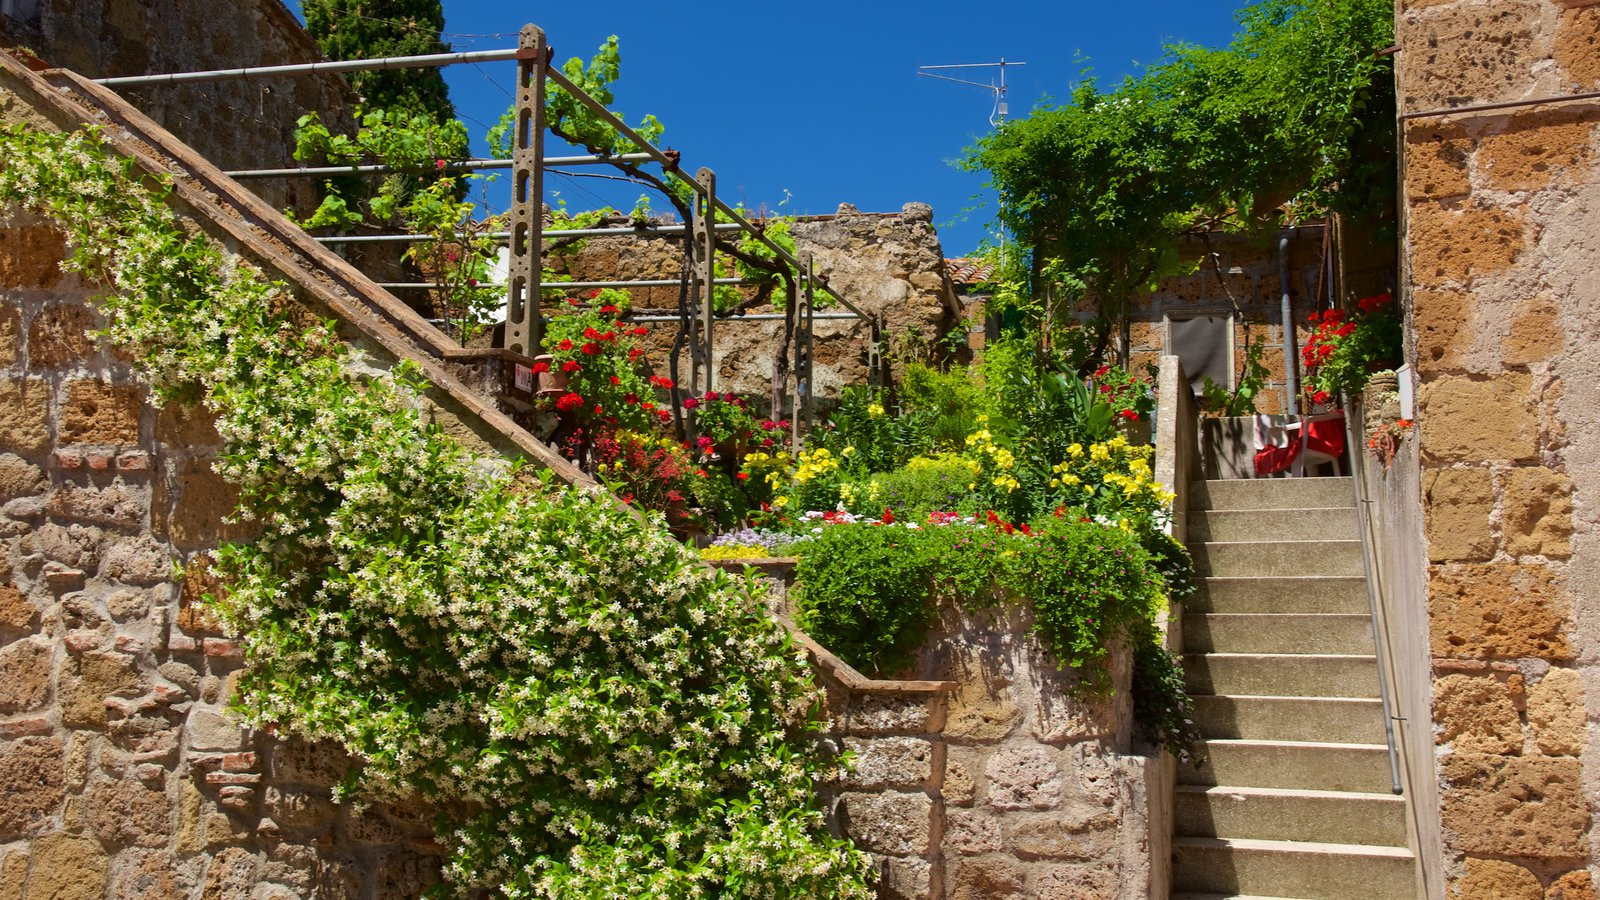 Sovana featuring flowers